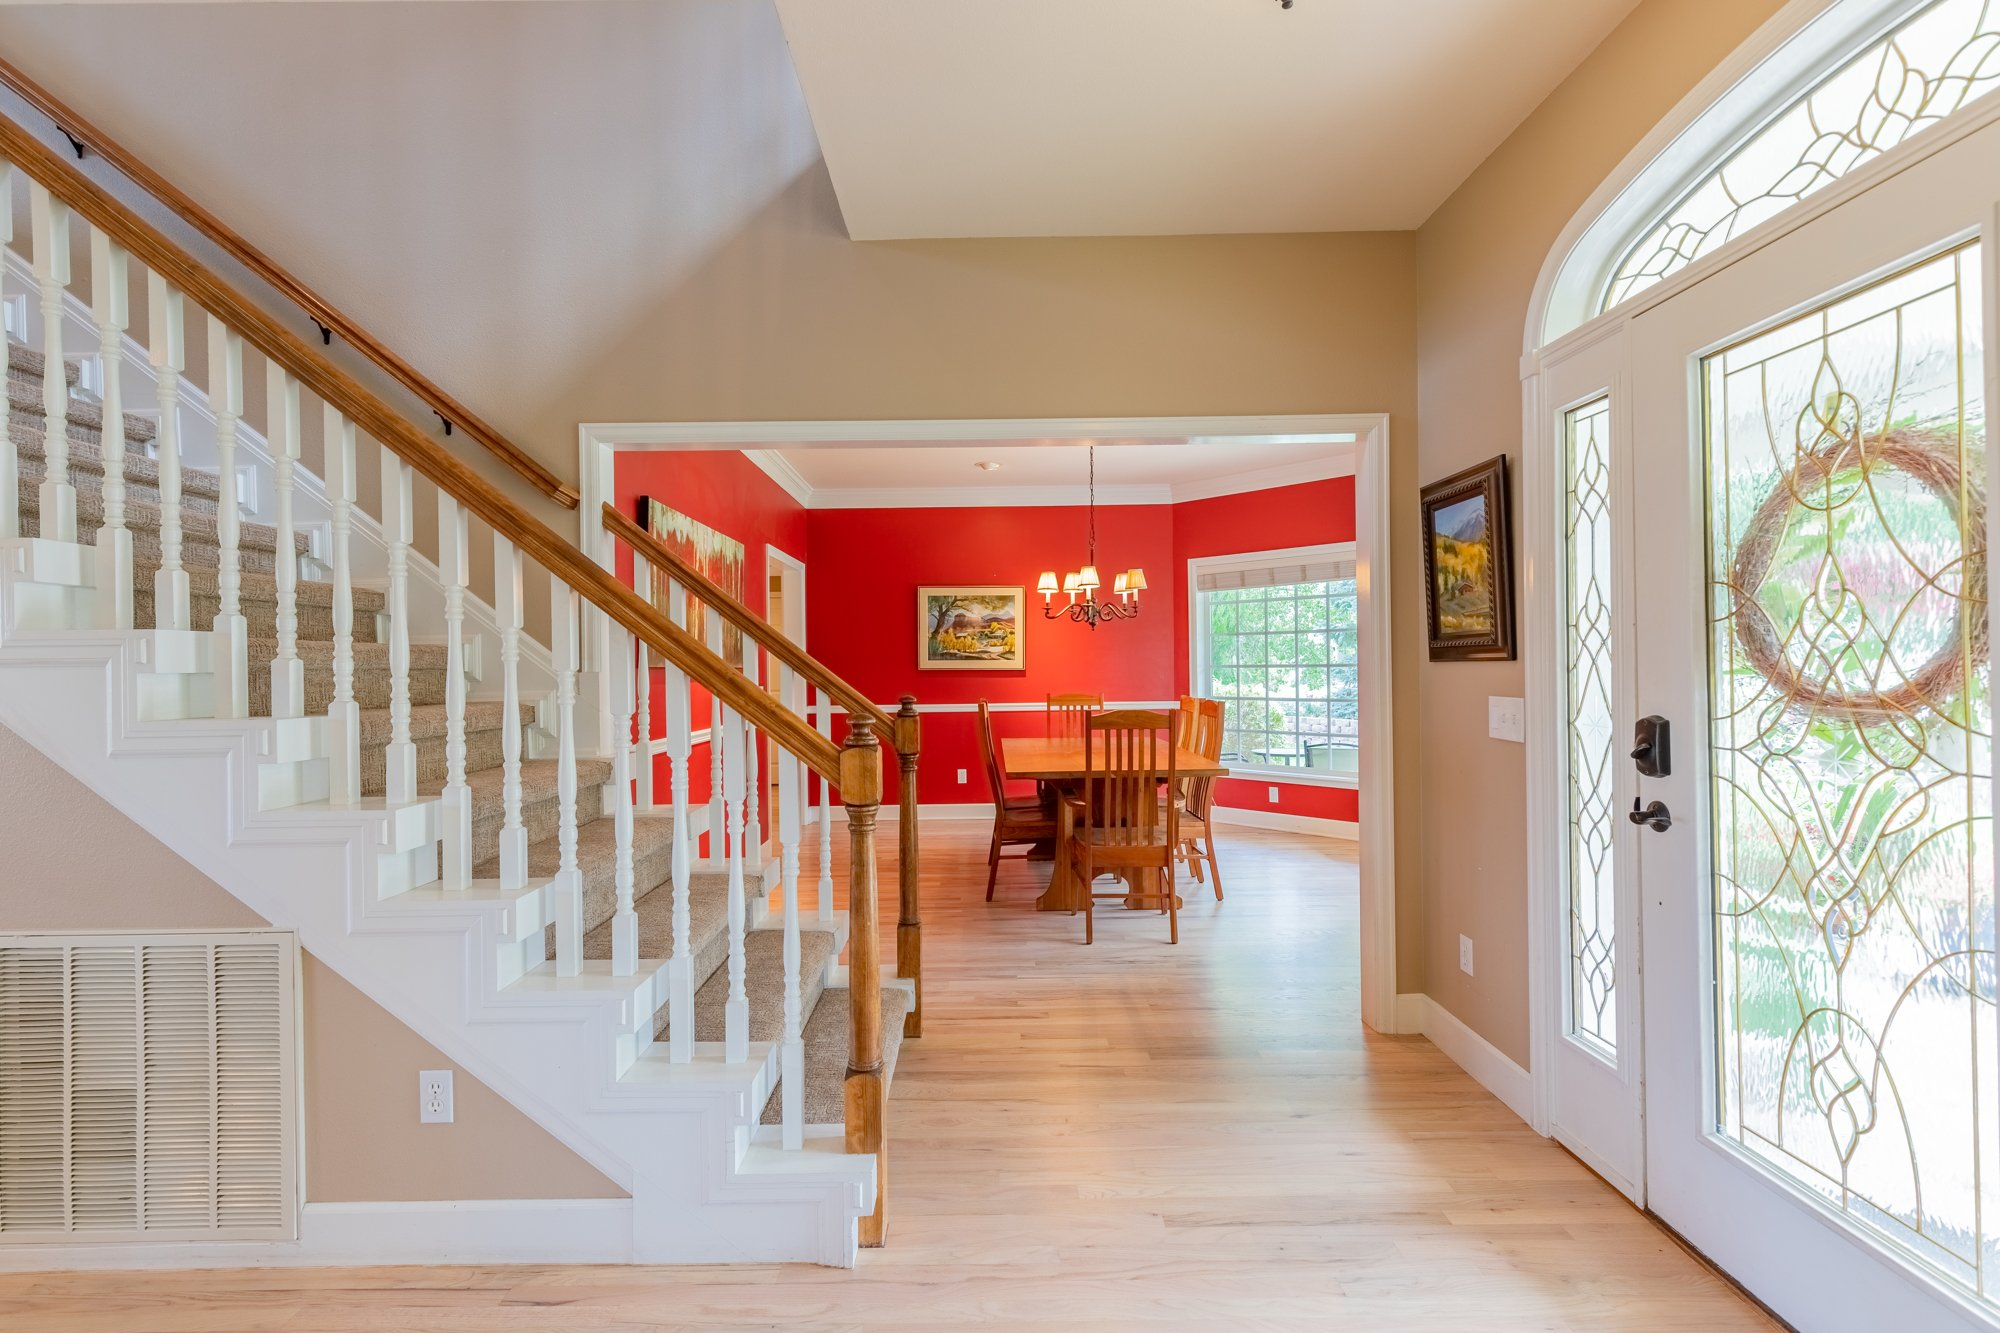 Entry Way to Dining Room - 2049 Brook Way Montrose, Co 81403 - Atha Team Luxury Real Estate